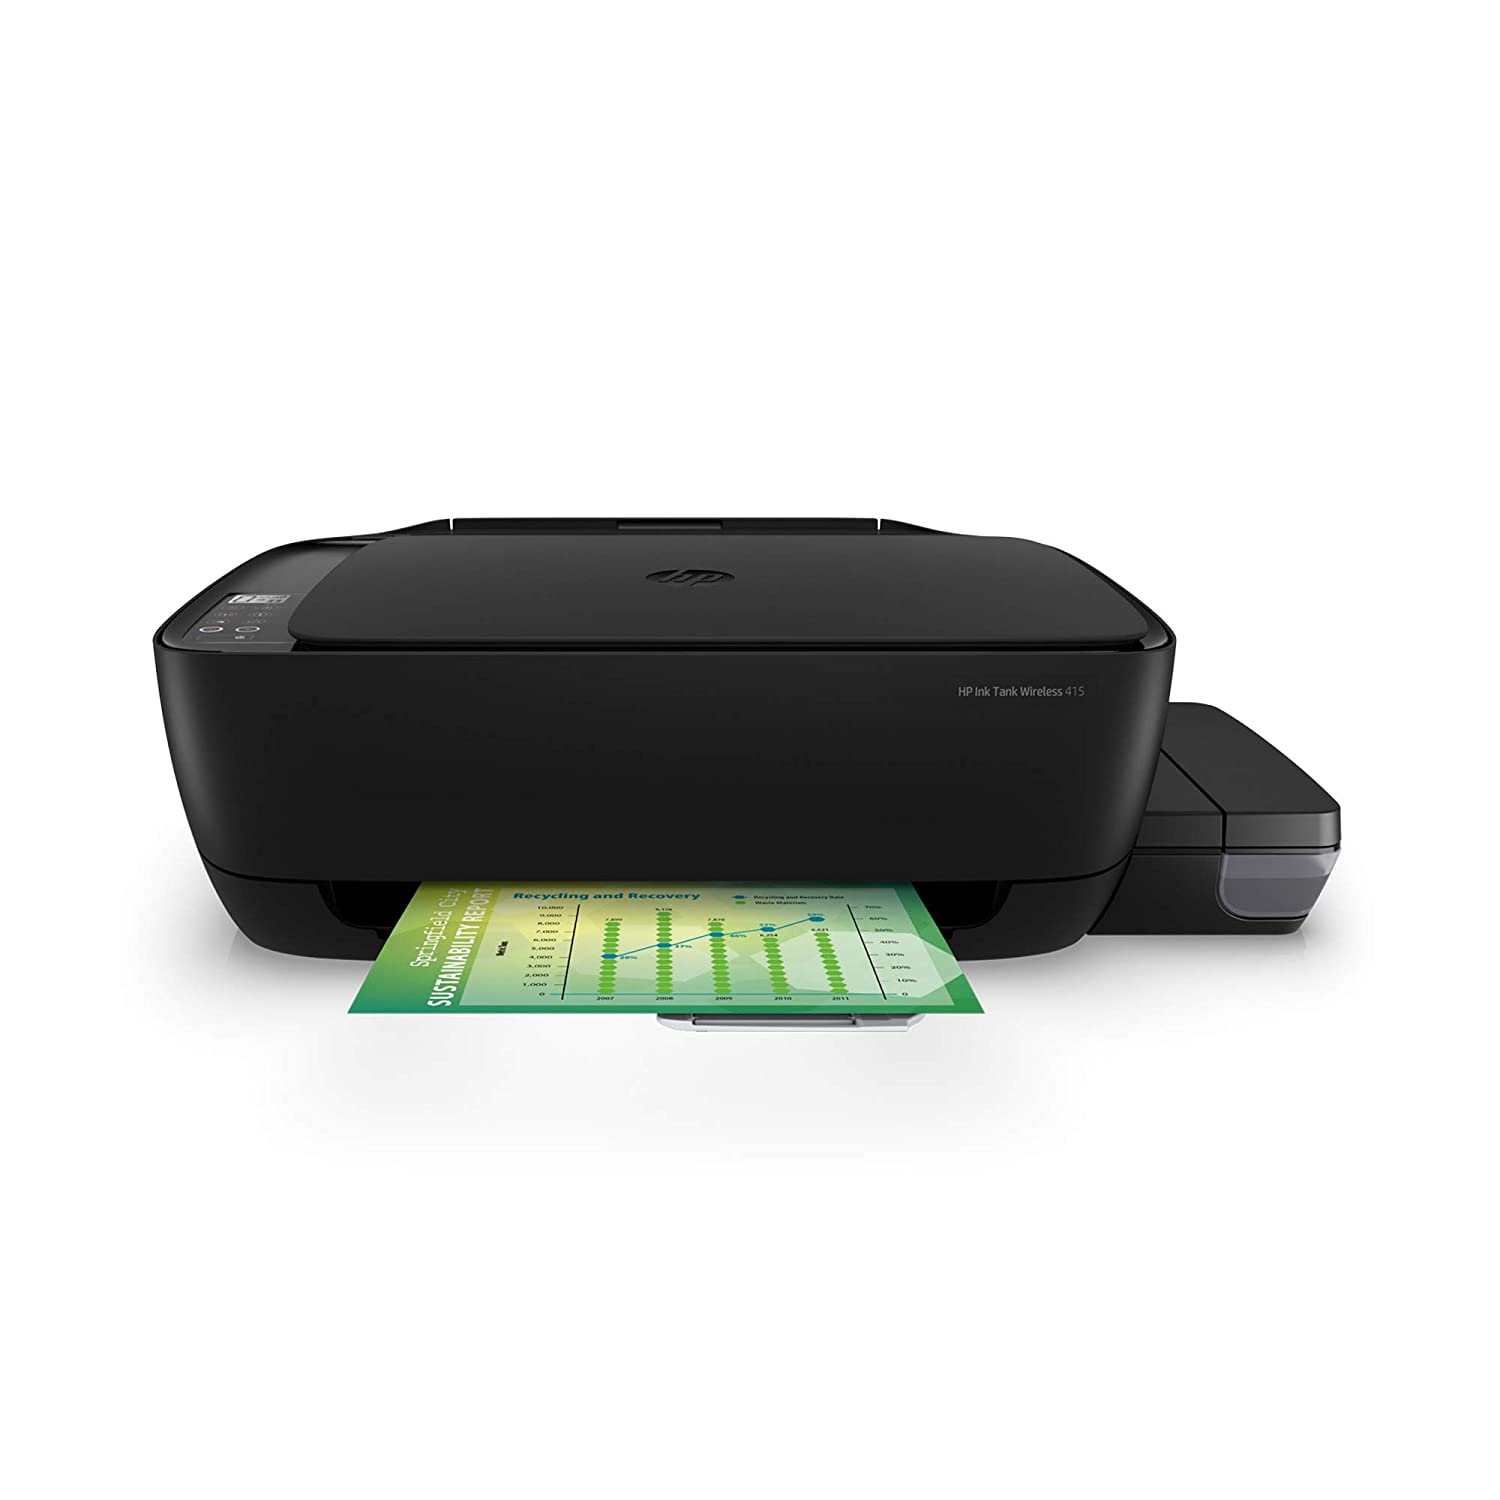 HP AIO INK TANK 415 / Z4B53A